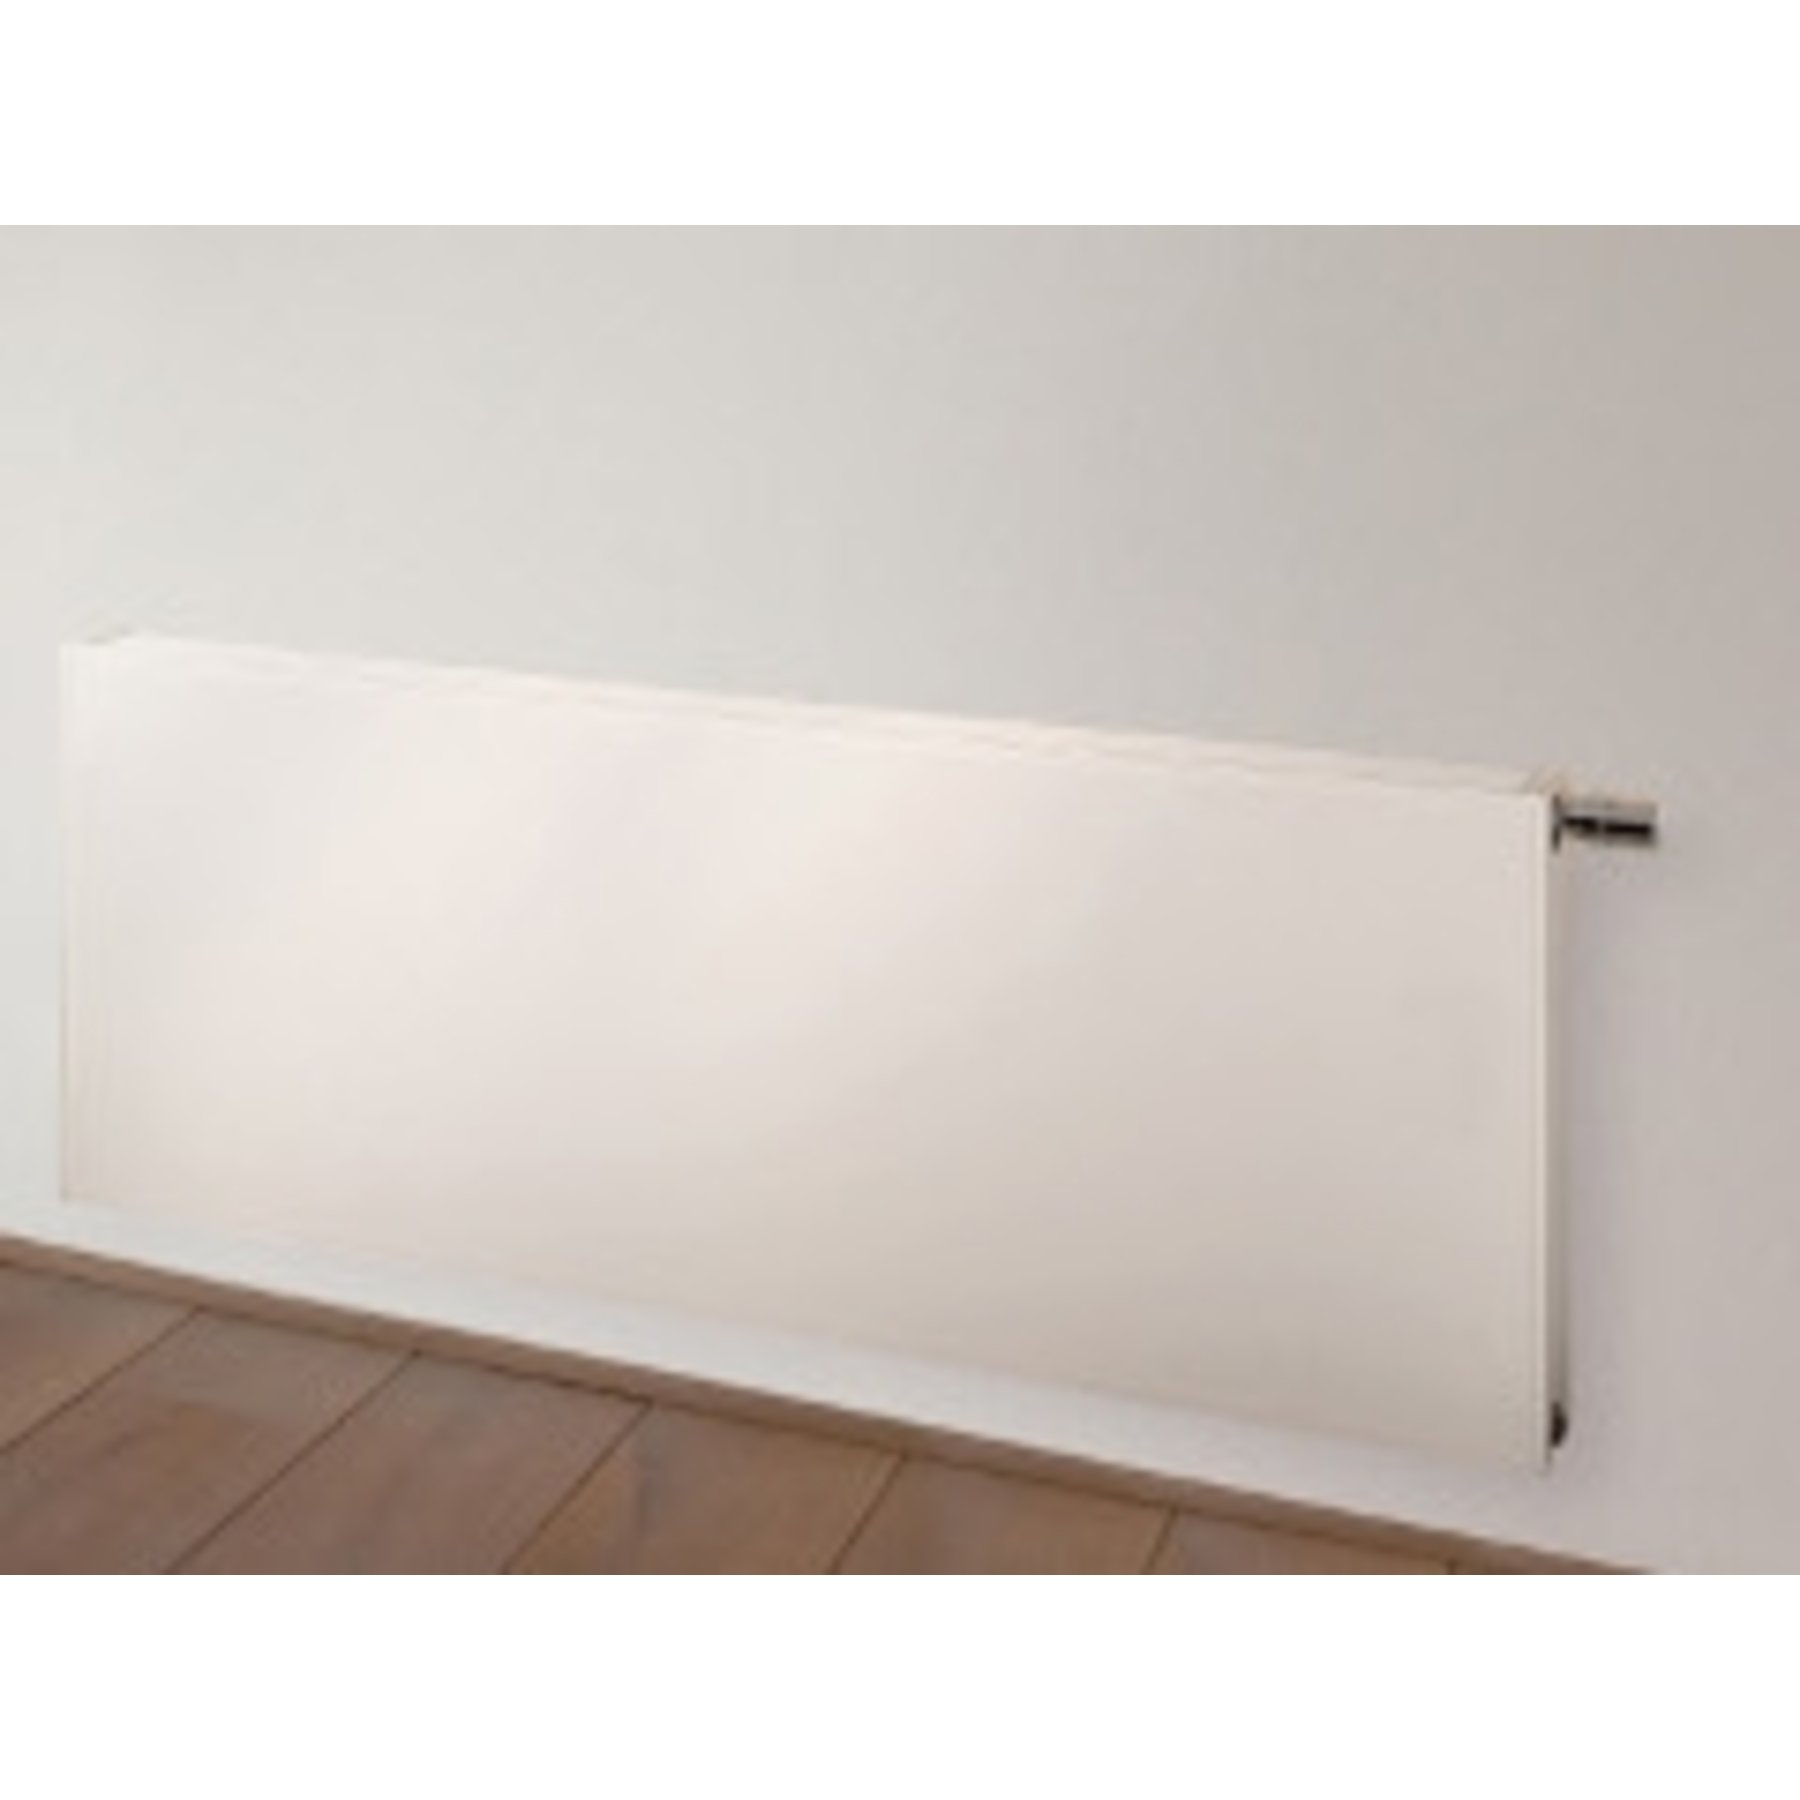 Vasco Flatline Paneelradiator type 21 400x1800mm 1645W vlak wit structuur (S600)